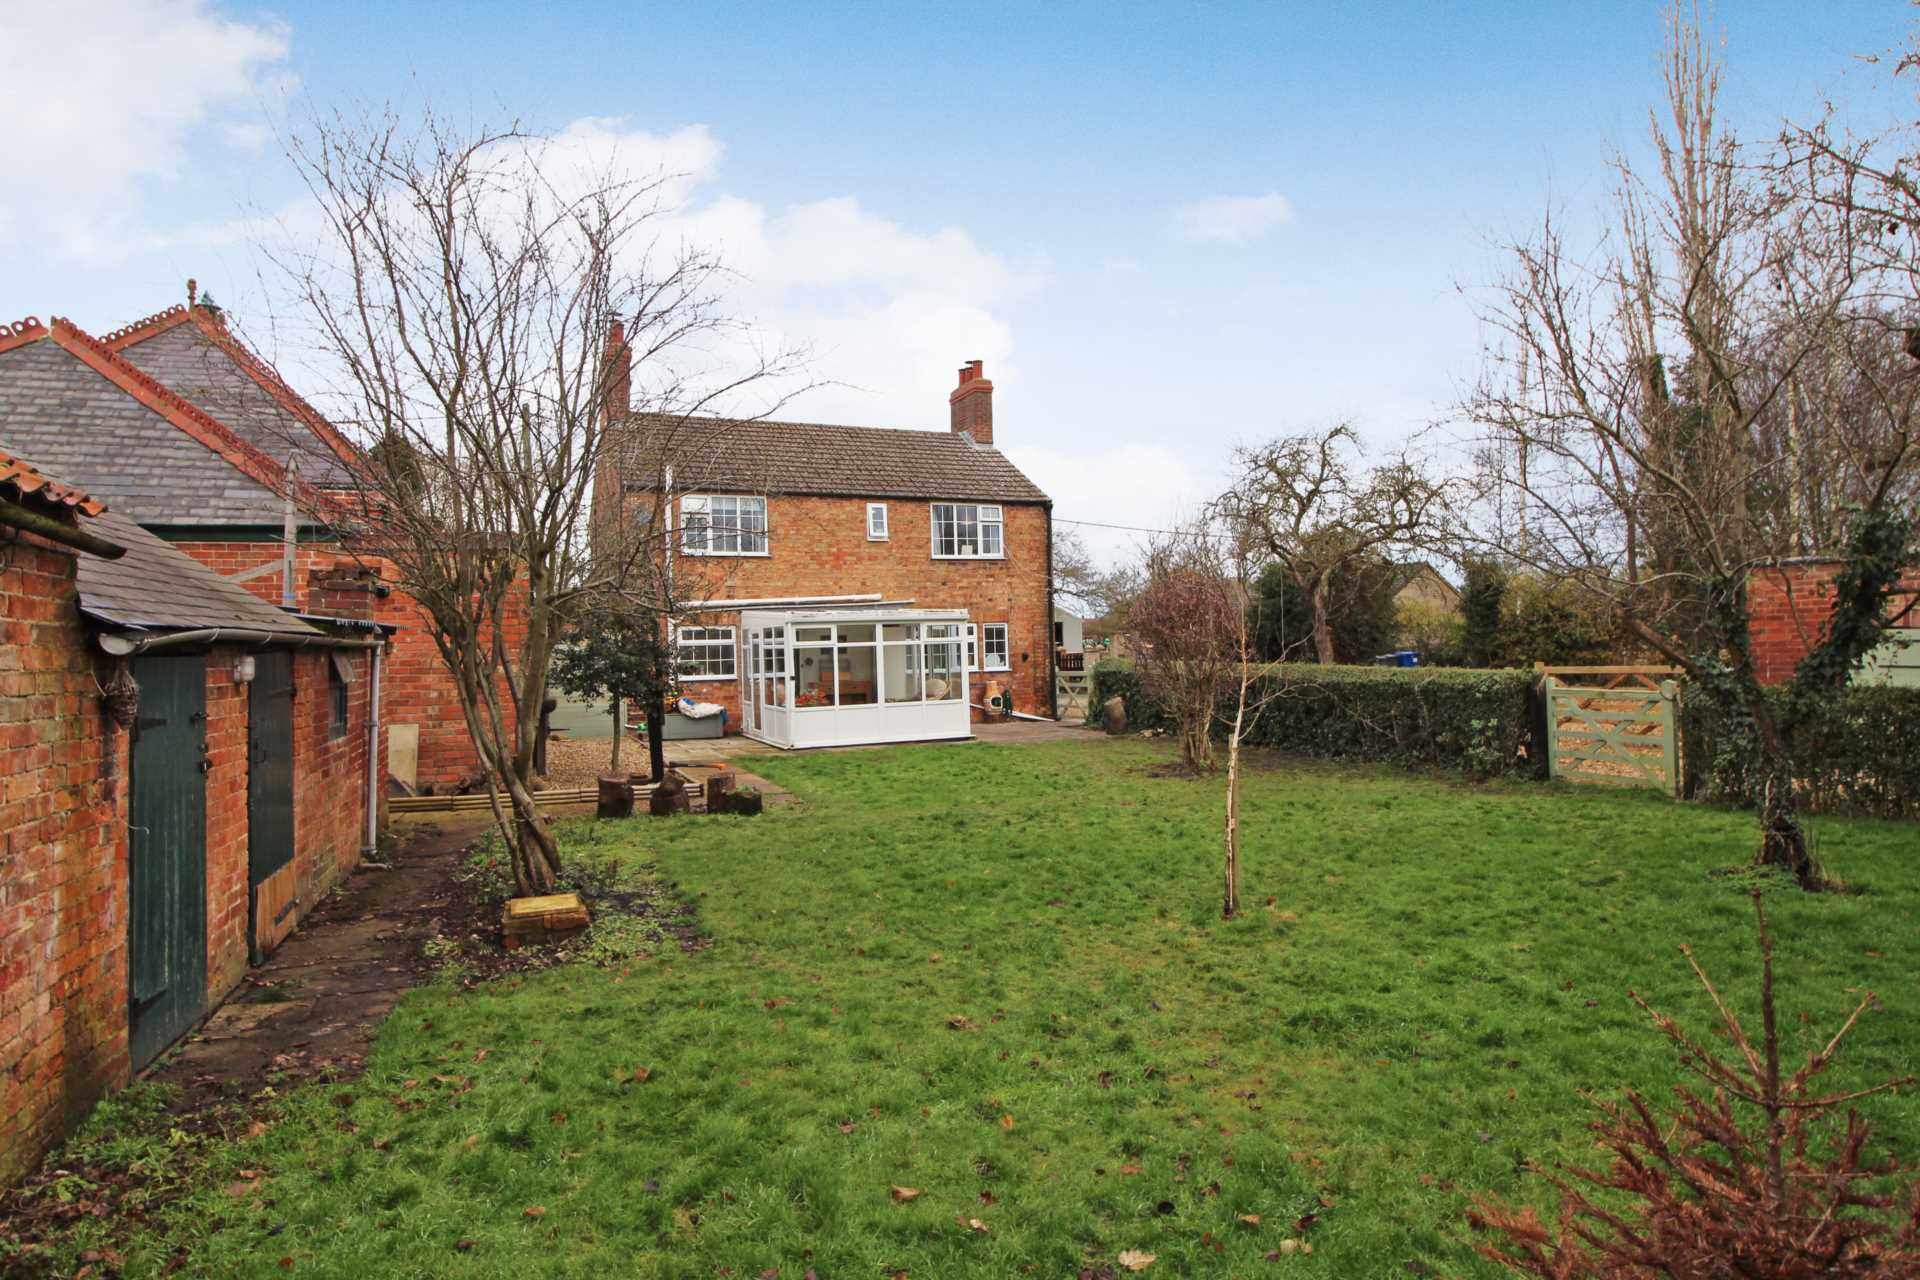 Pleasant Villa, Heapham, Gainsborough - with approx 6 acres sts., Image 21